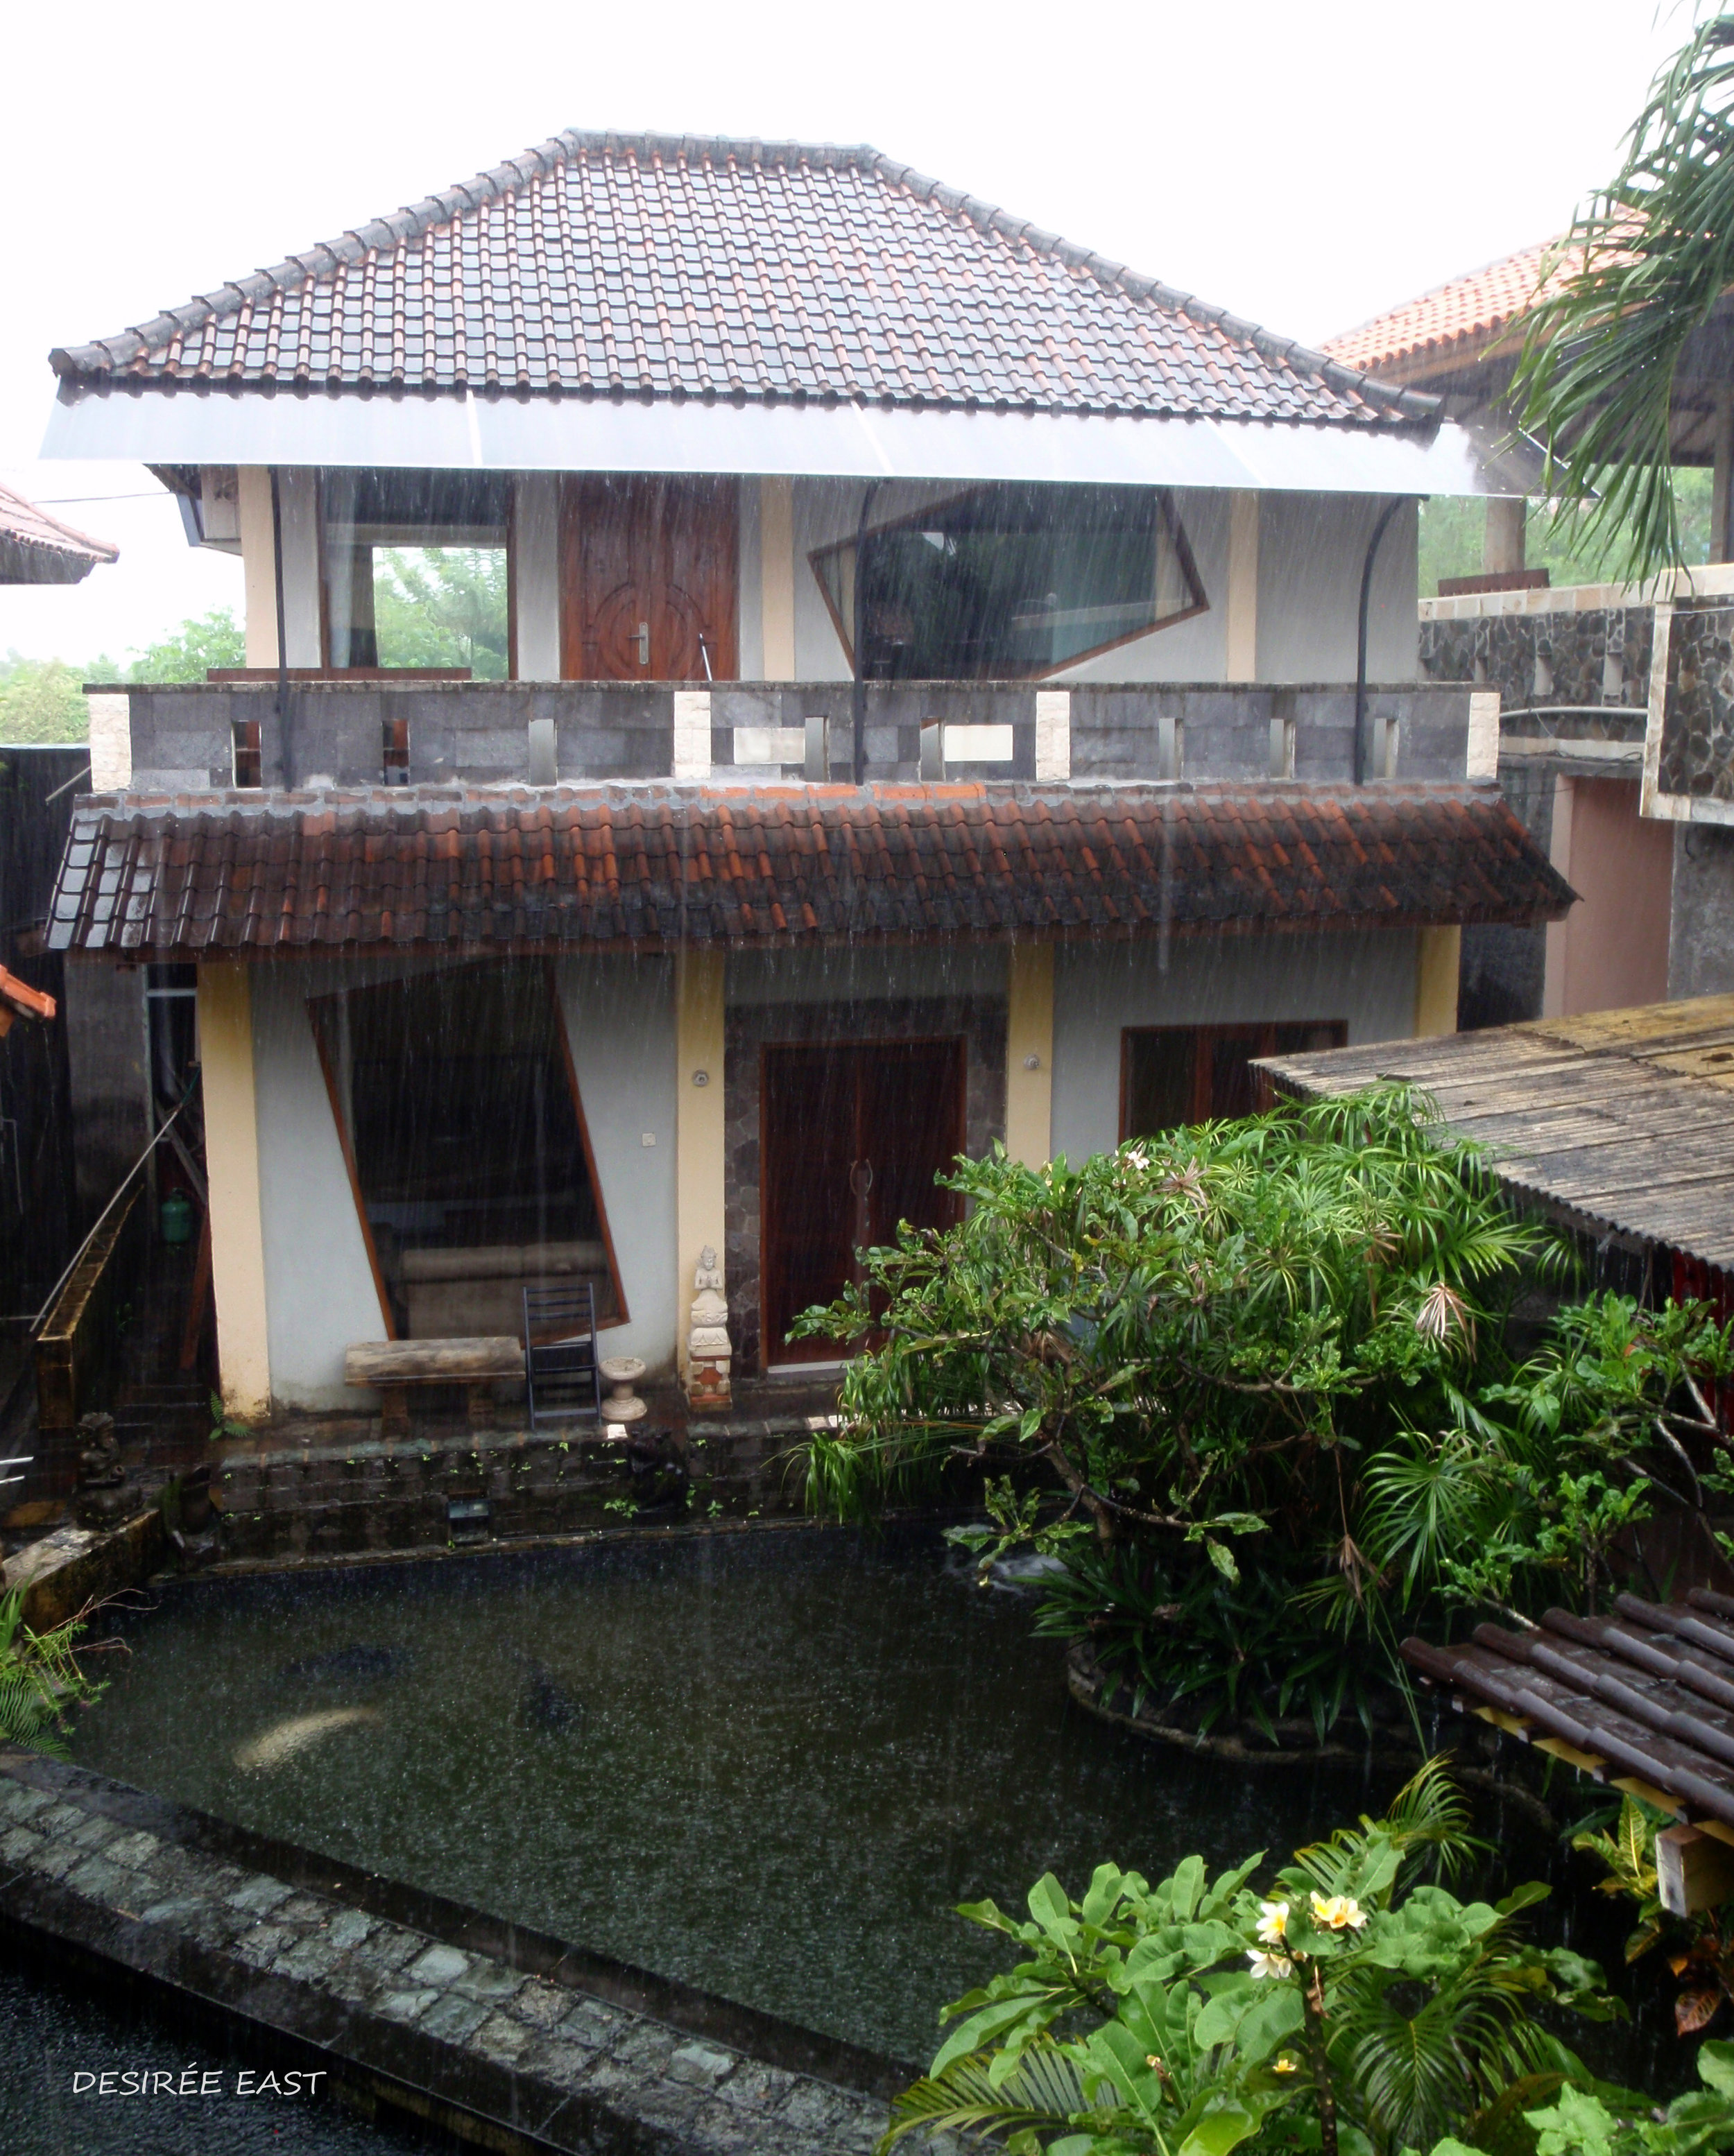 view from upstairs. andree homestay. bali, indonesia. photo by desiree east